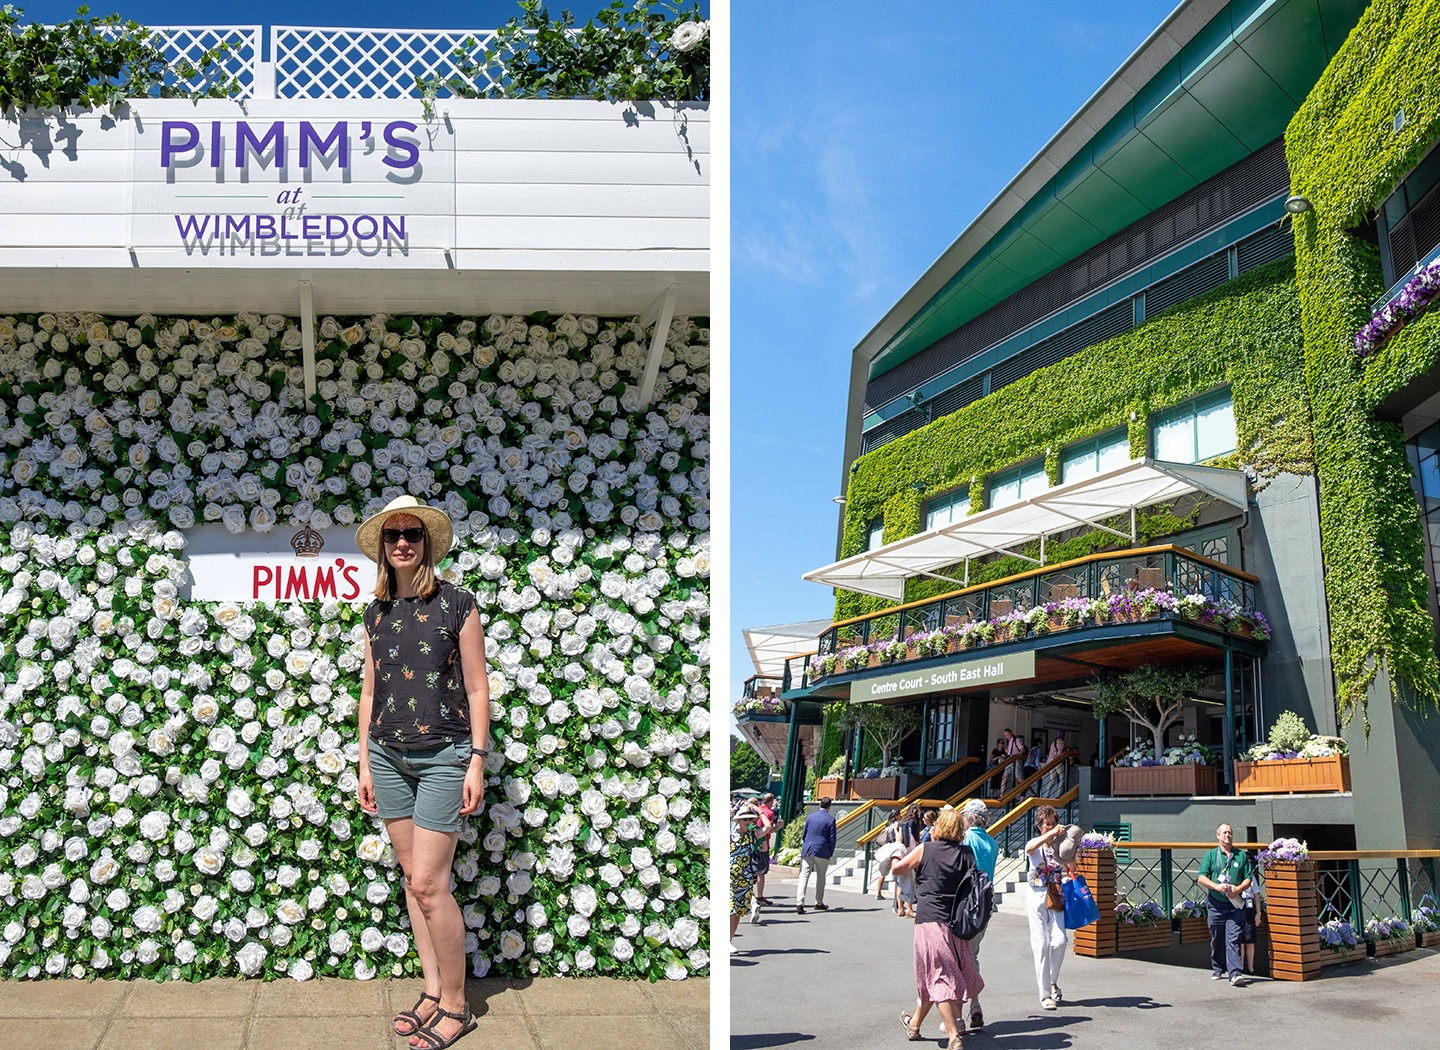 Dressed up for the tennis at Wimbledon